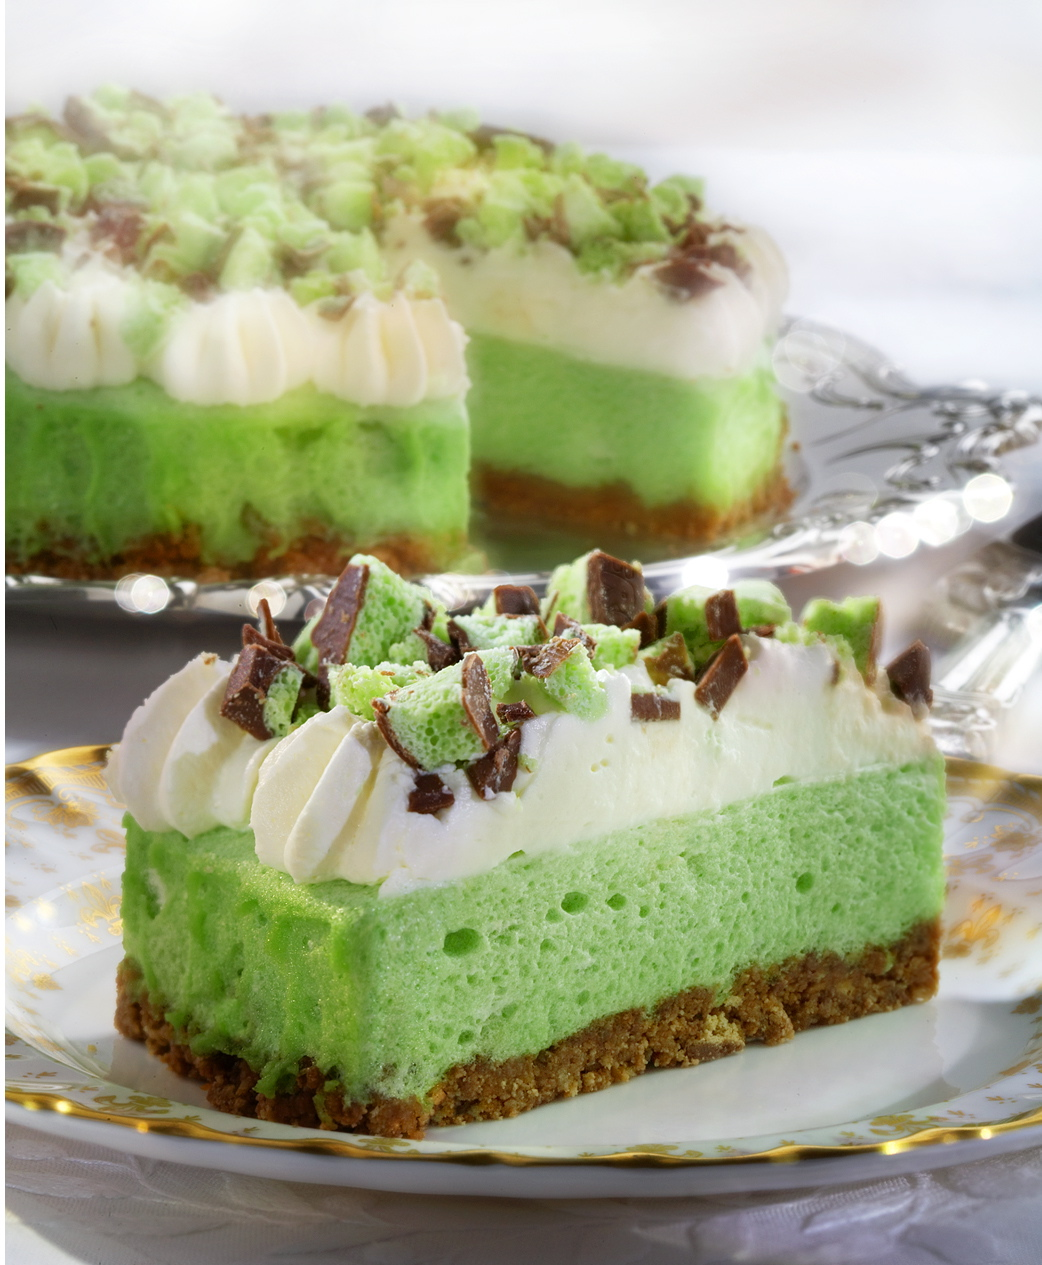 Aero Chocolate Mint Cheesecake Recipe